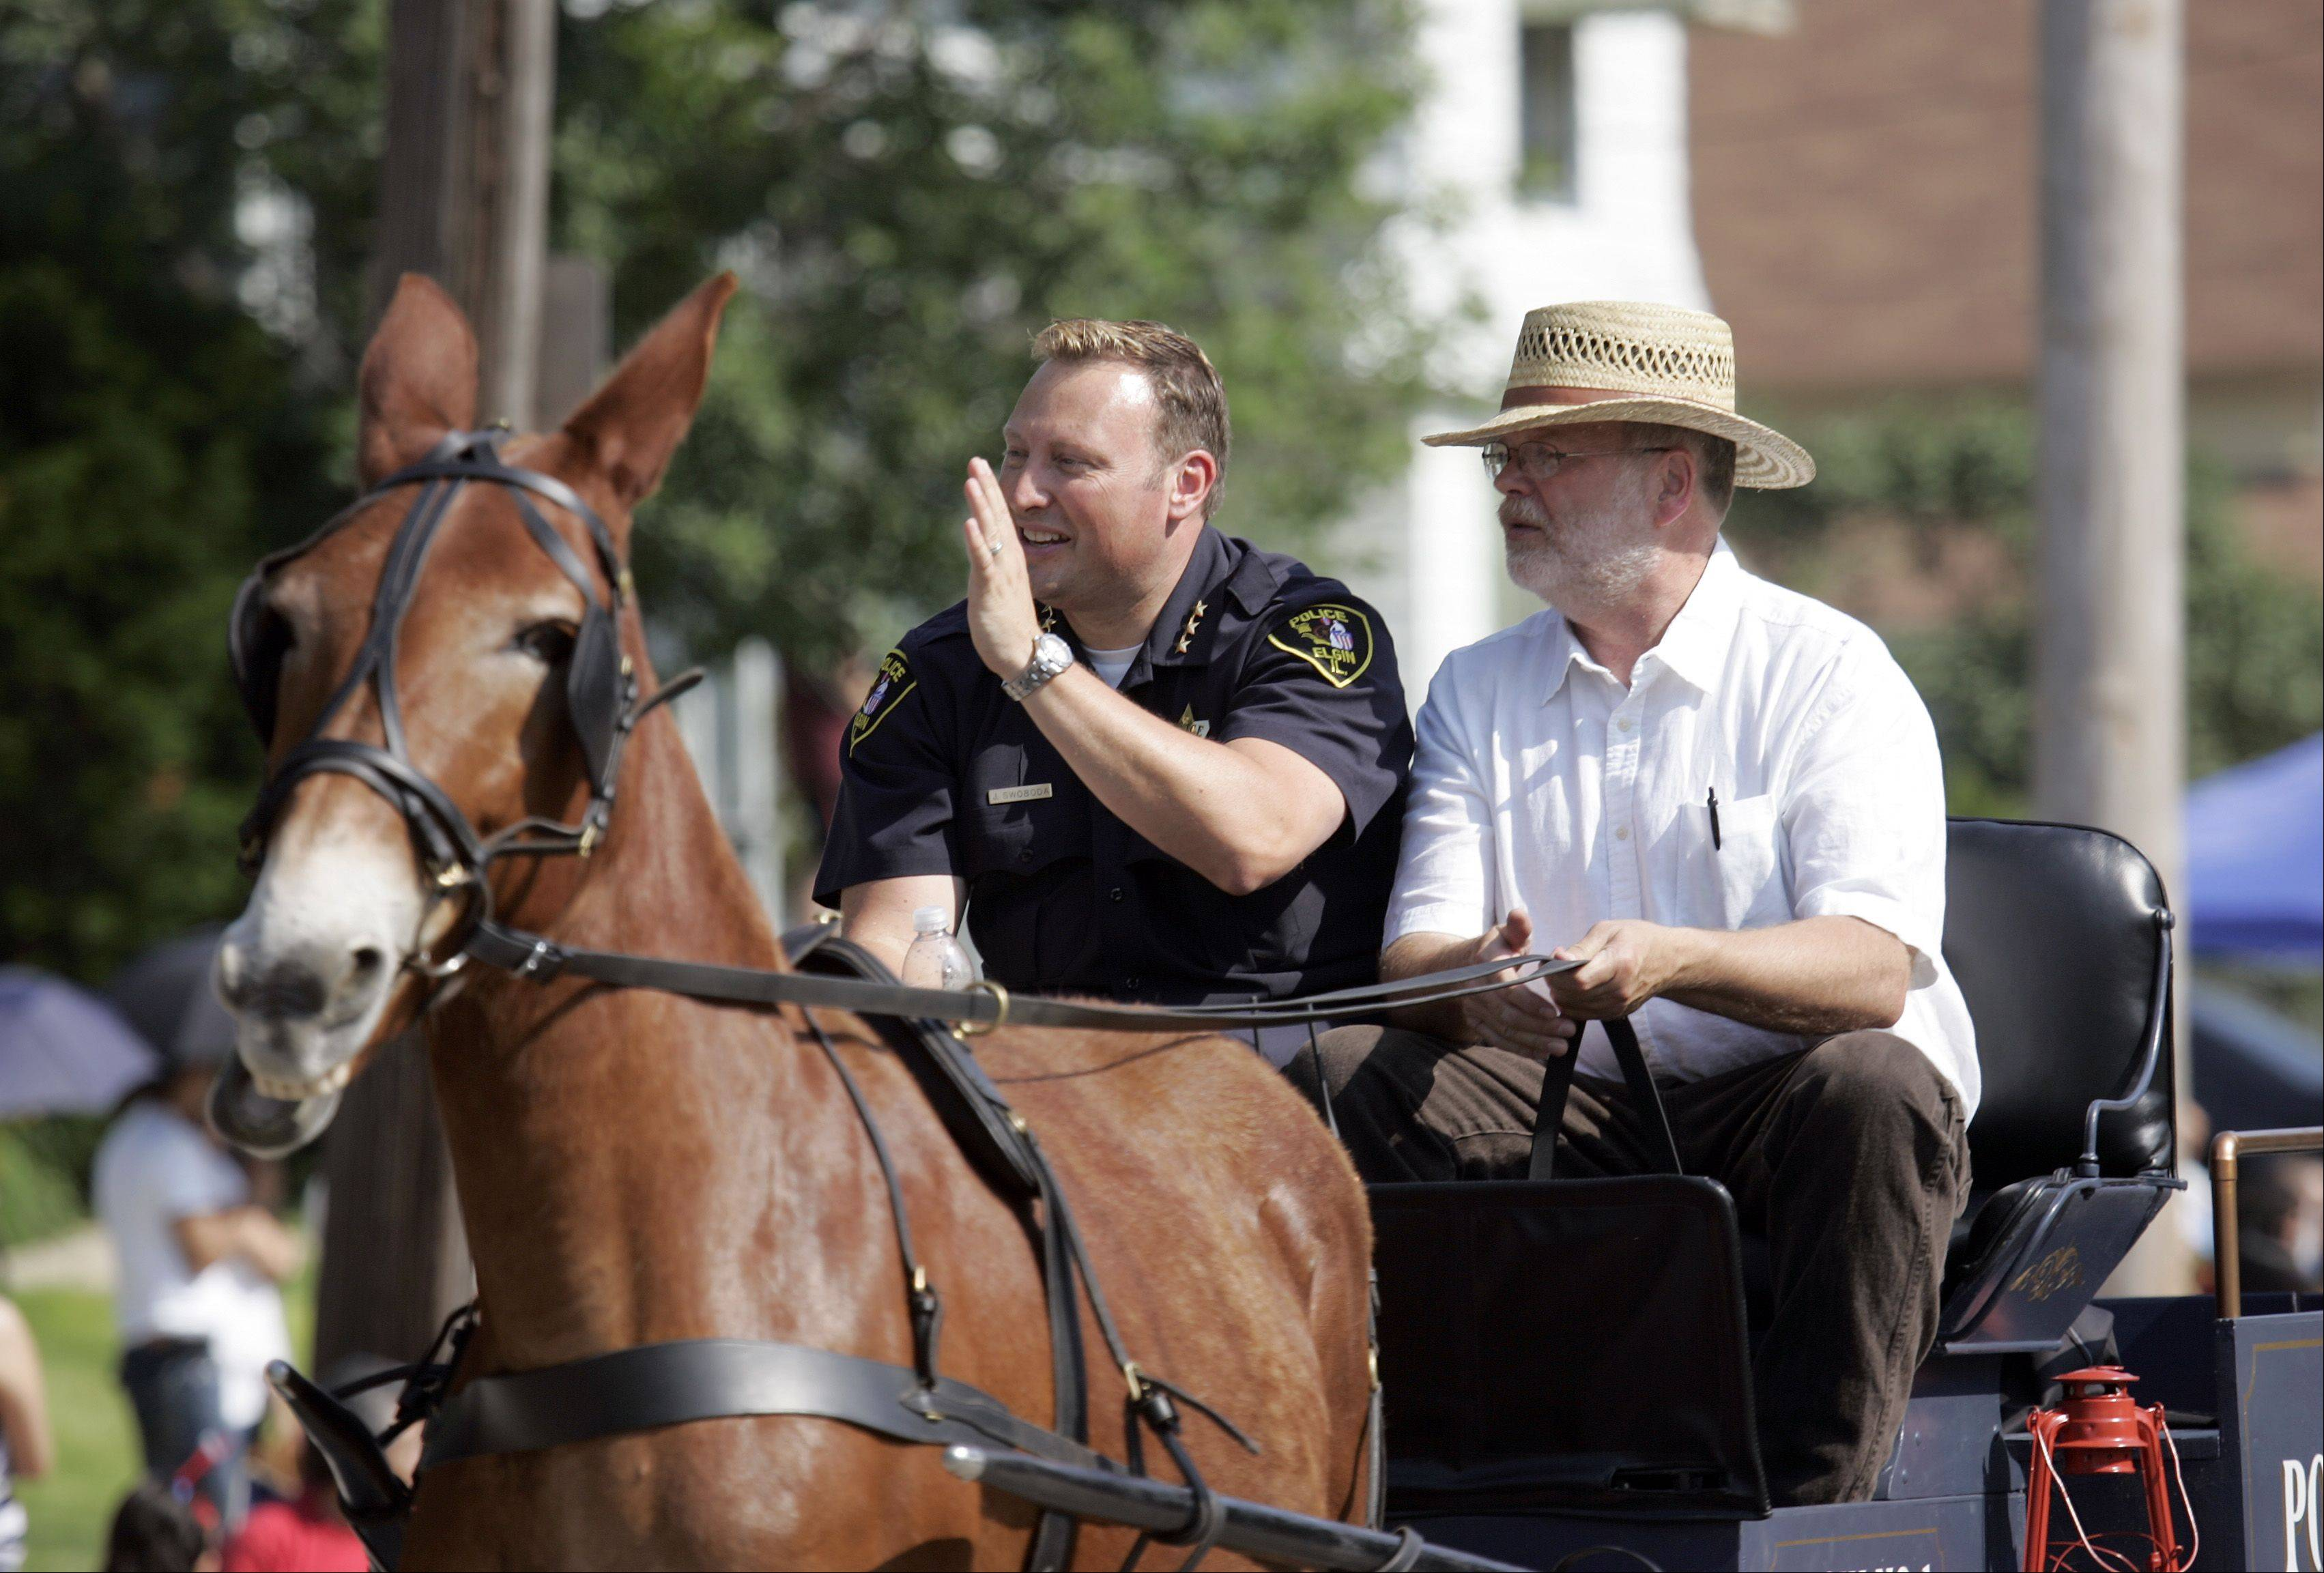 Elgin Police Chief Jeff Swoboda, left, waves to the crowd during the Elgin Fourth of July Parade.